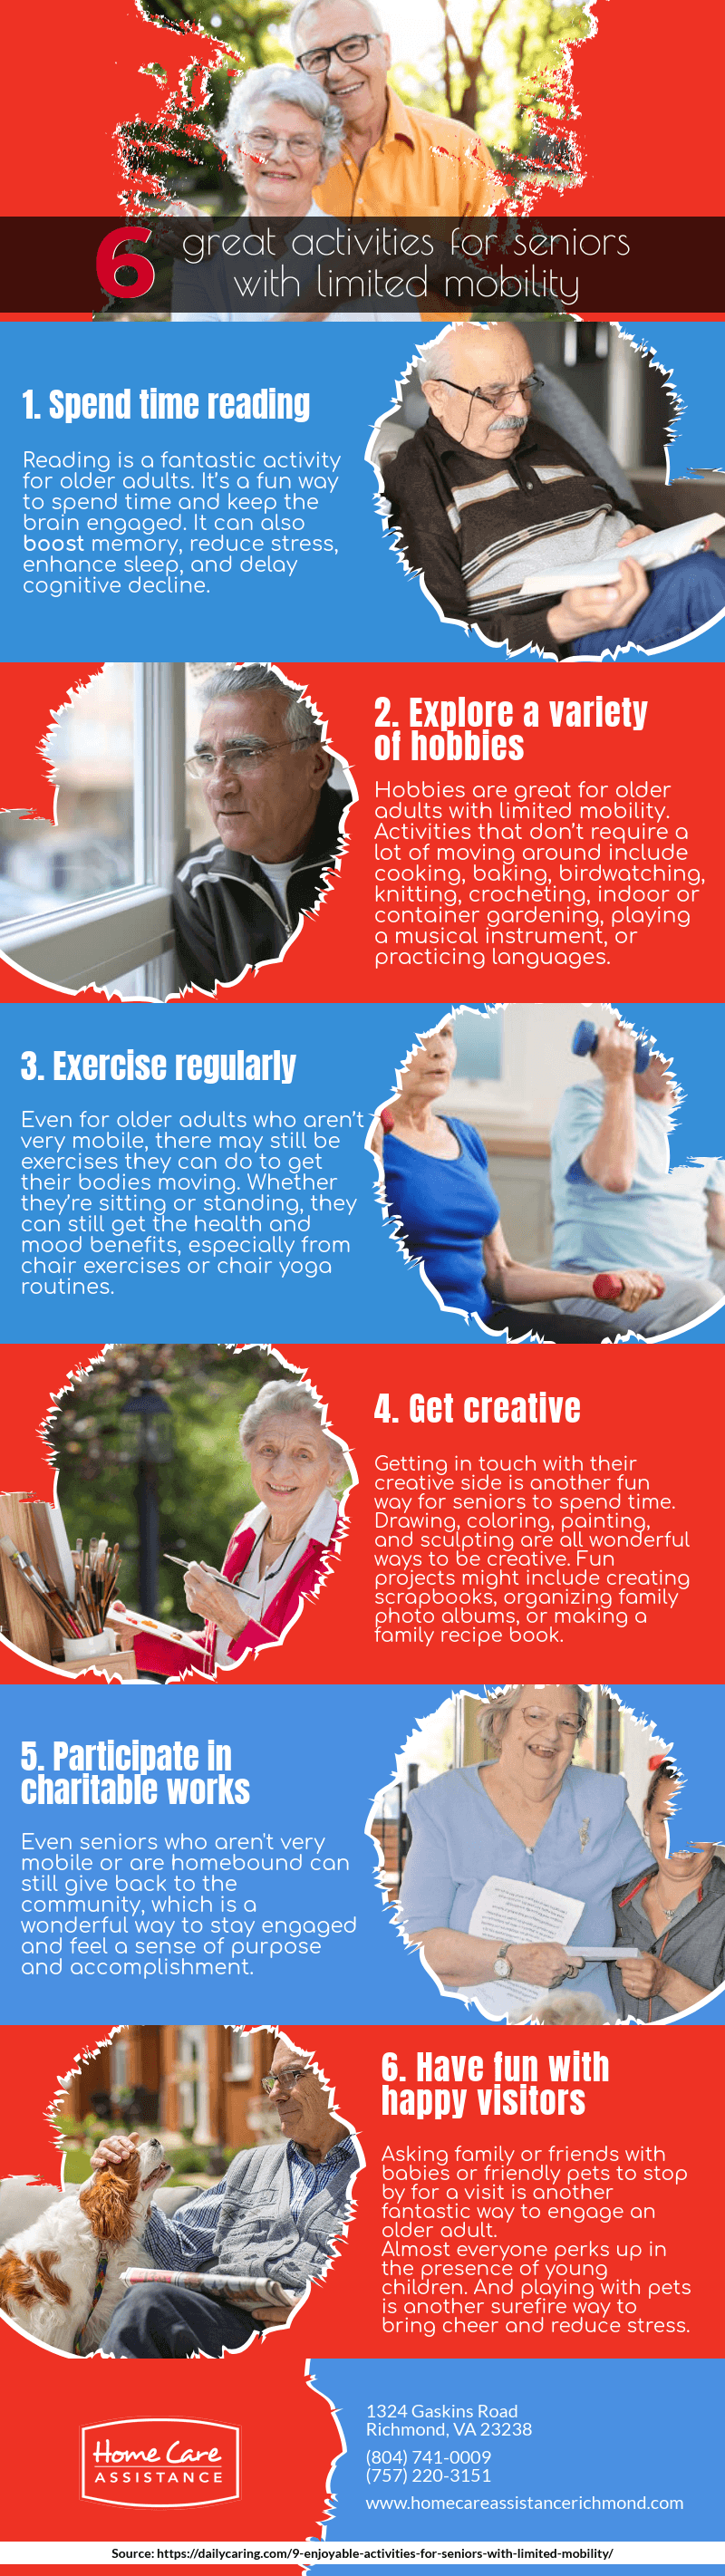 6-perfect-activities-for-aging-adults-with-mobility-limitations-infographic